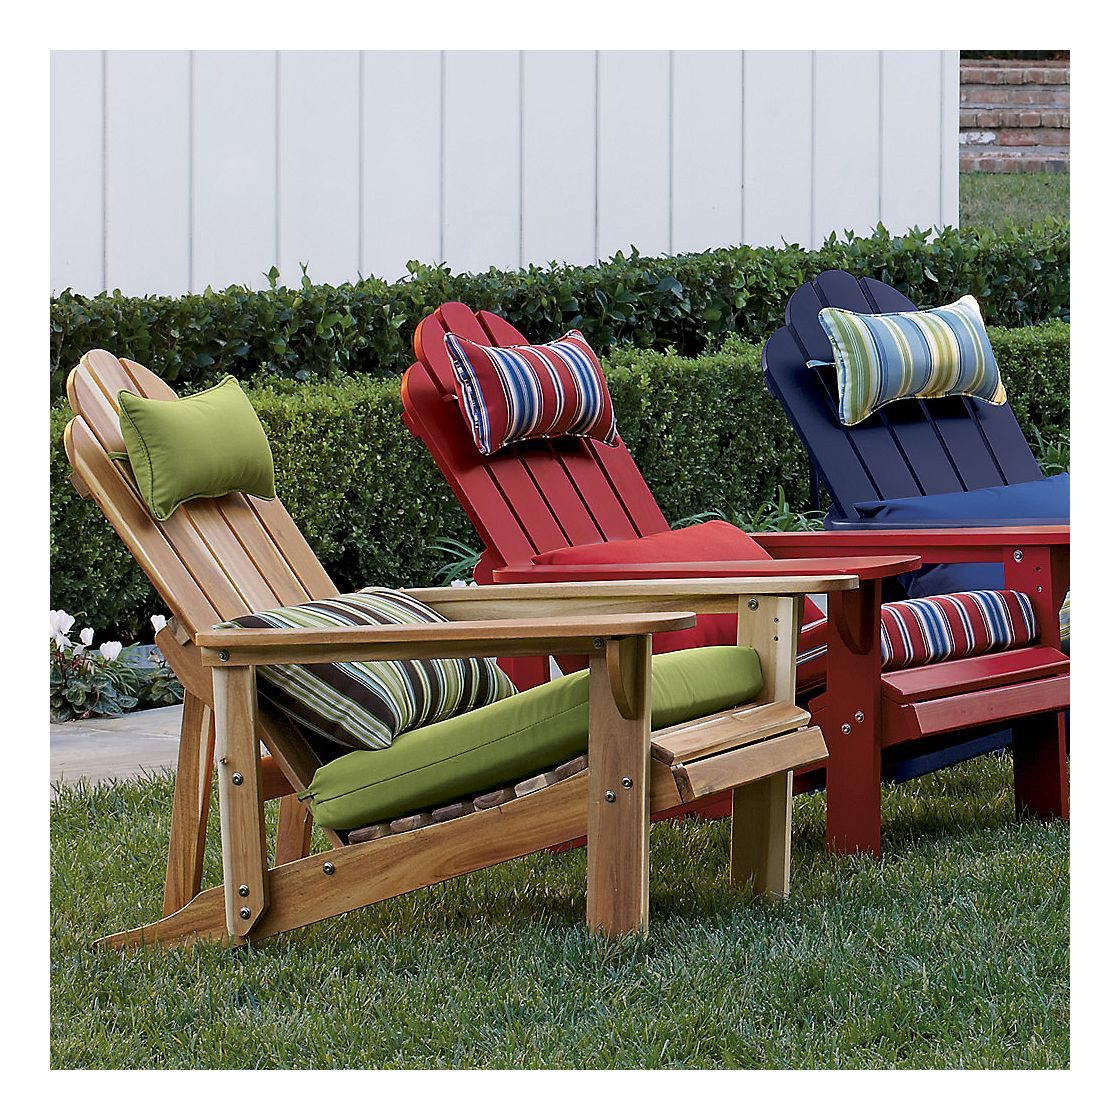 Adirondack Chair Cushion The Company Store Adirondack